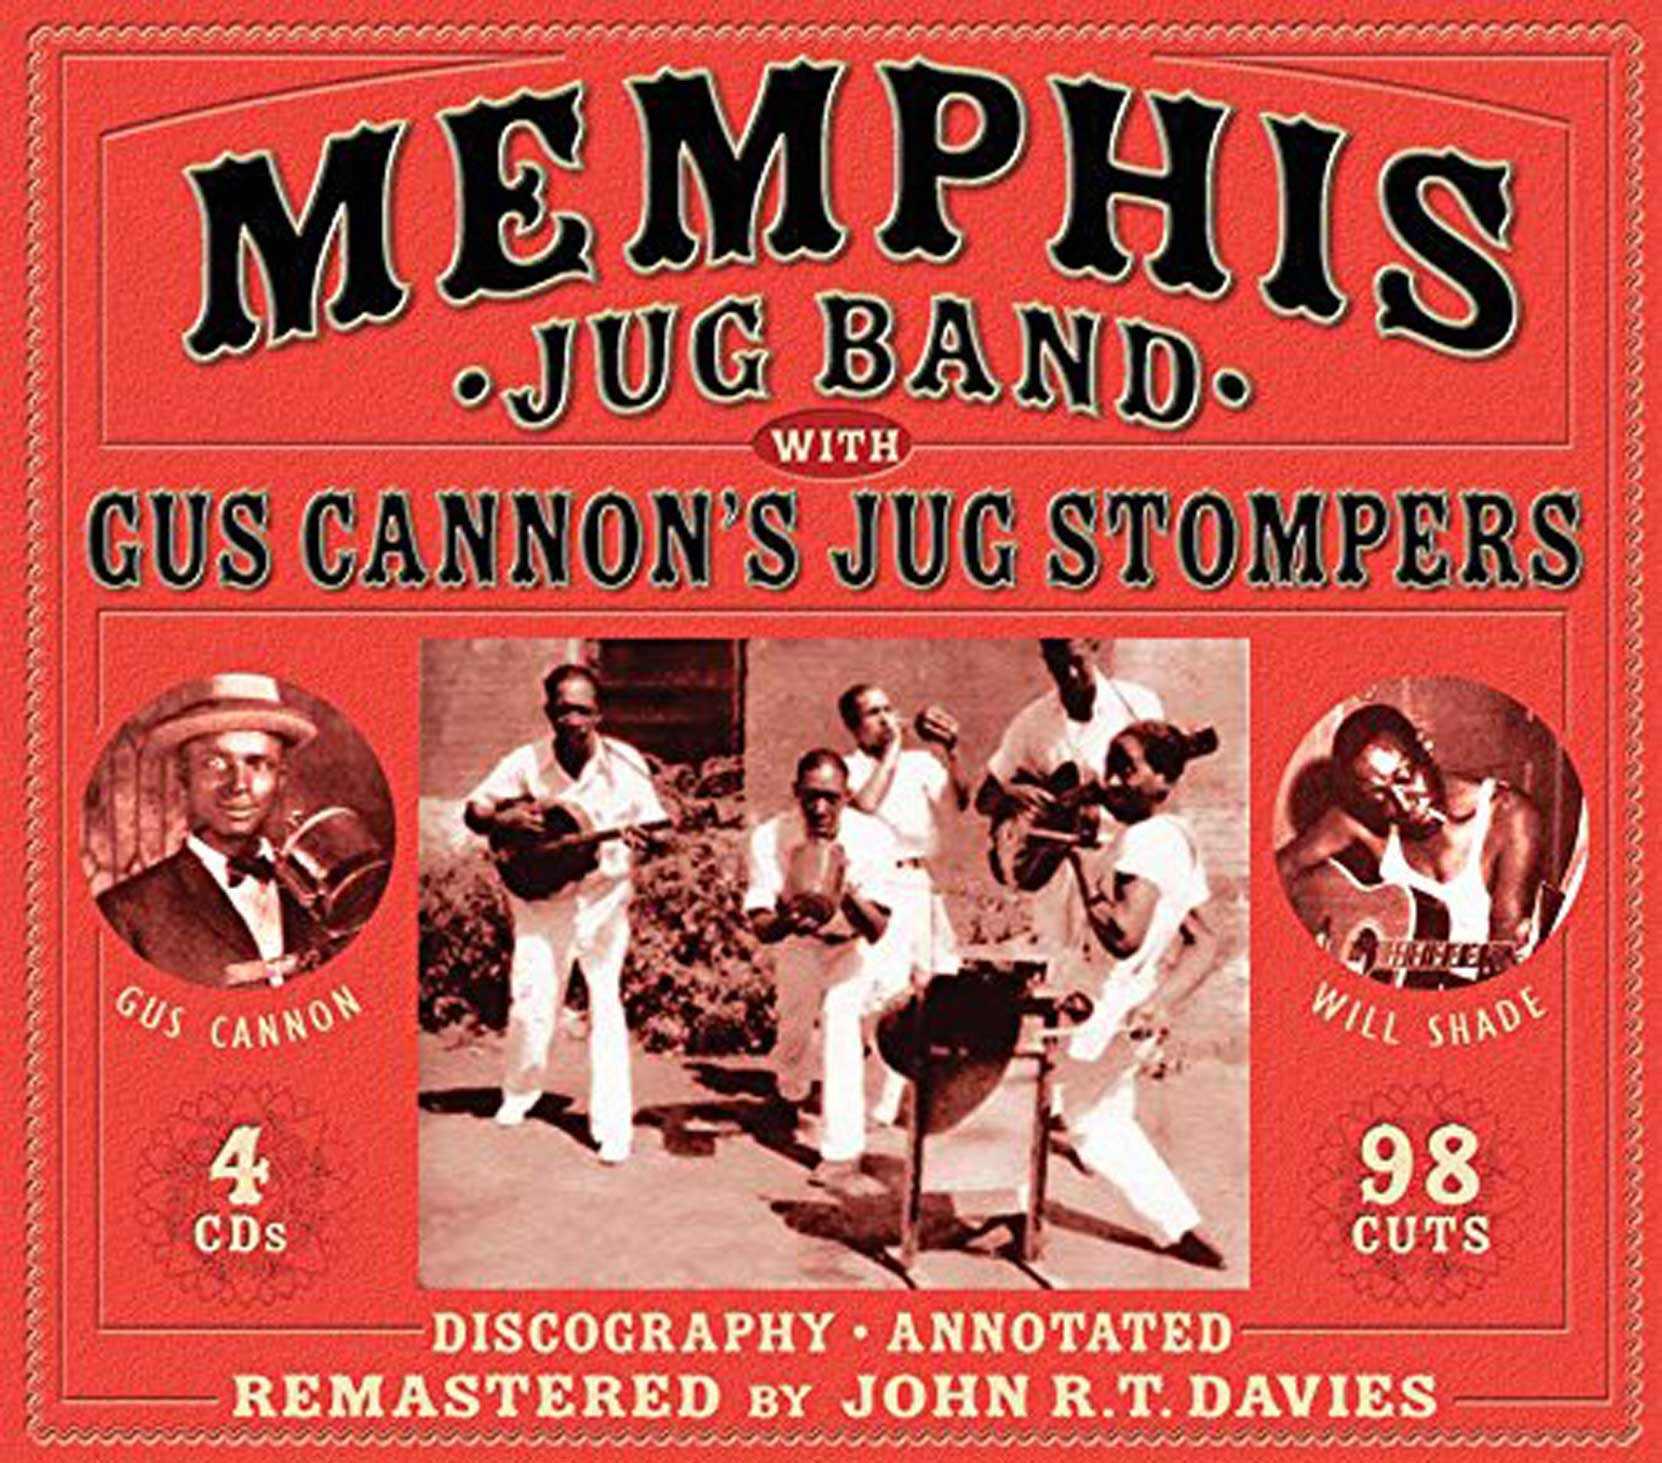 Memphis Jug Band & Gus Cannon's Jug Stompers, a 4CD, 98 track box set, released by JSP Records, CD cover